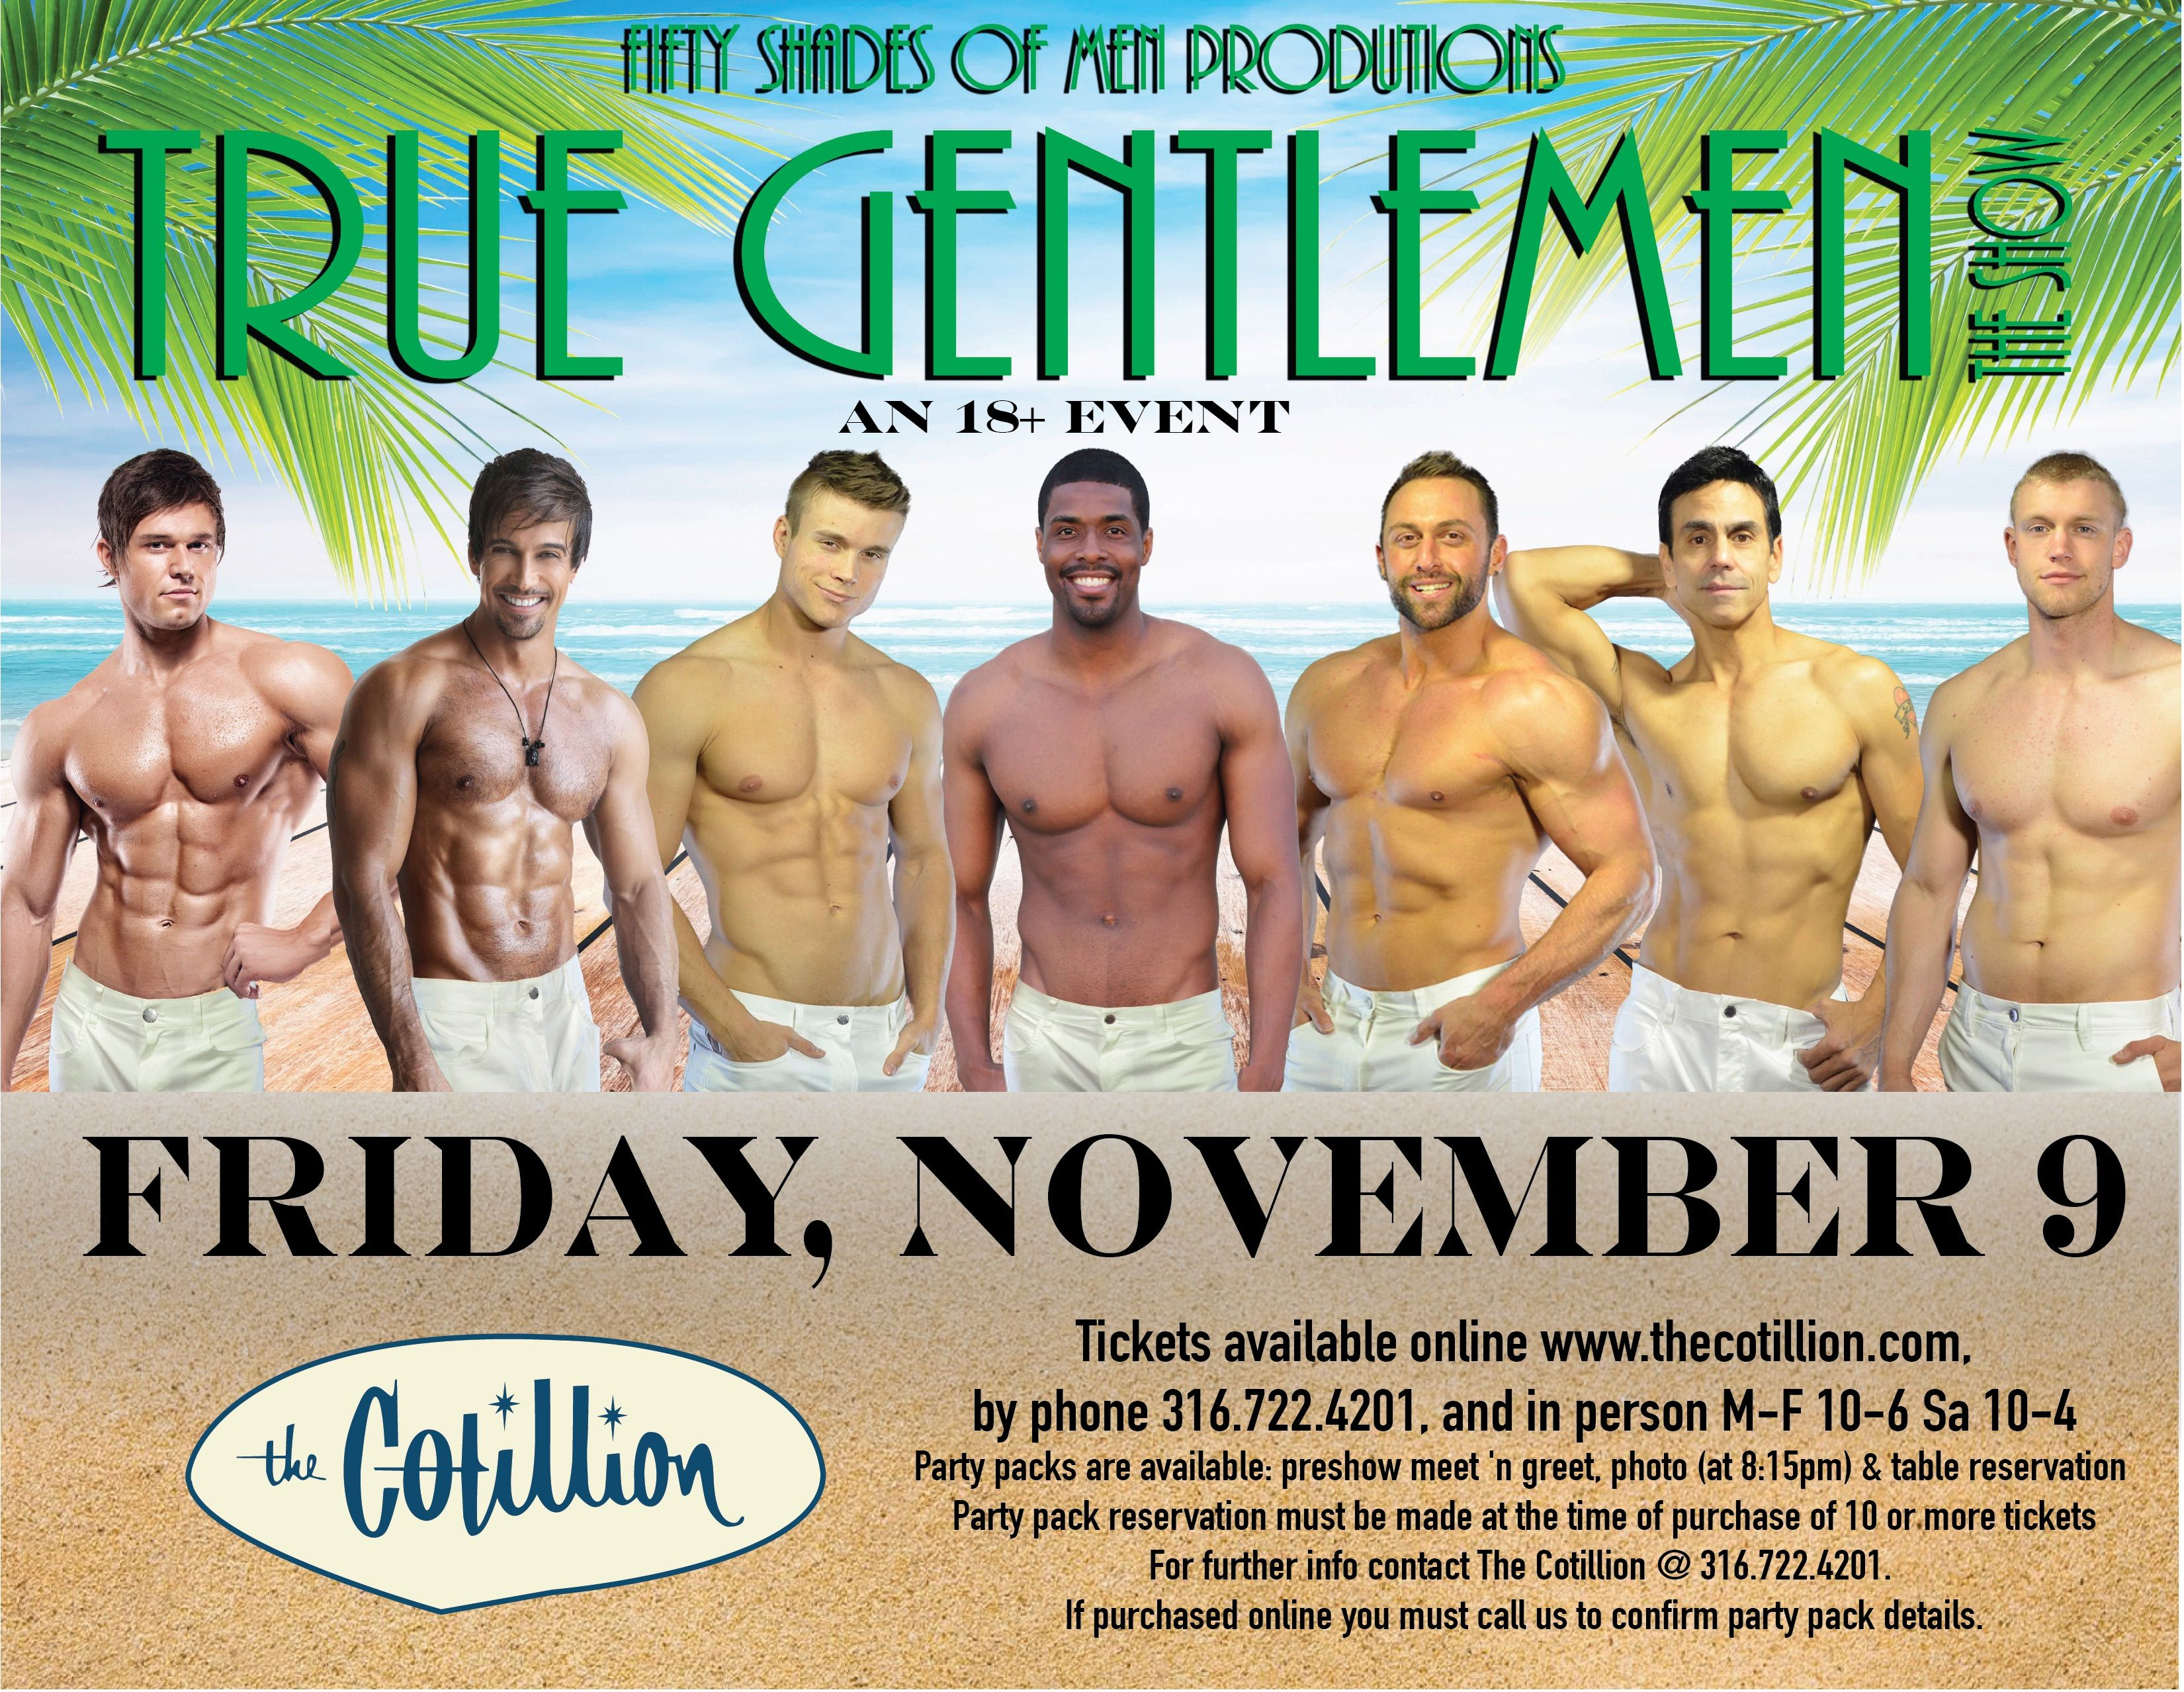 True Gentlemen The Show Friday Nov 9 730pm Doors 9pm Show Advance